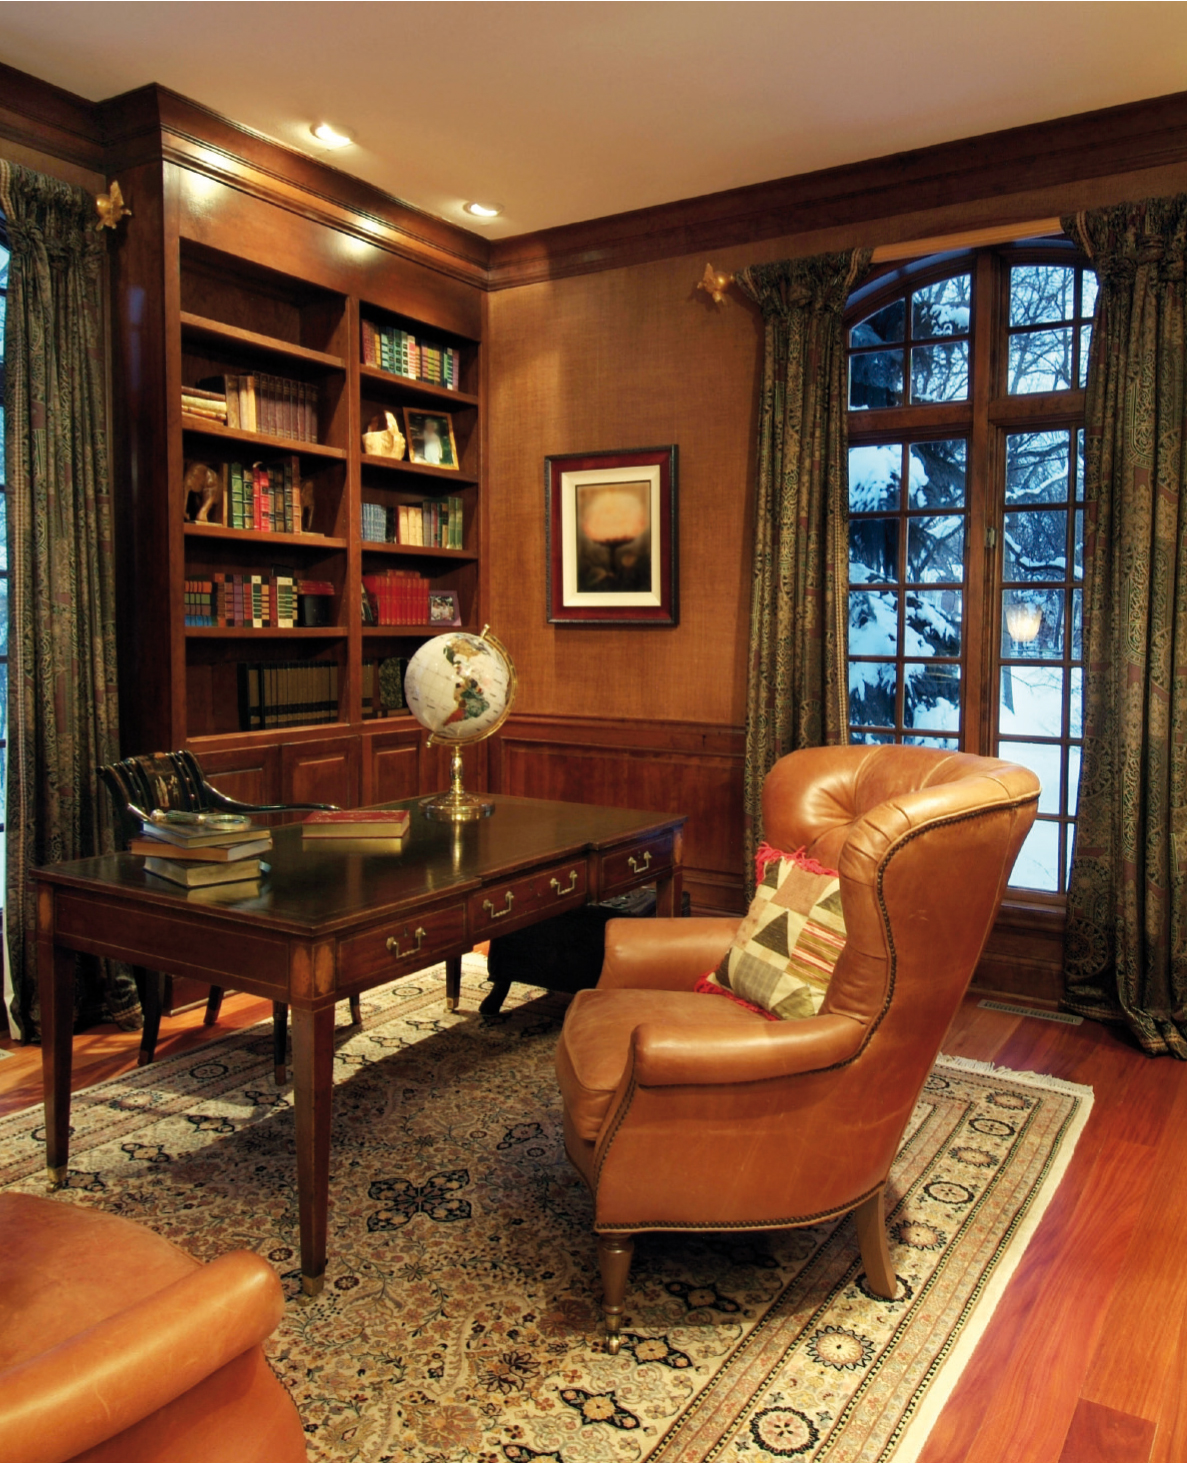 Home Office Library Design Ideas: The Gentleman's Room: Creating A Masculine Aesthetic